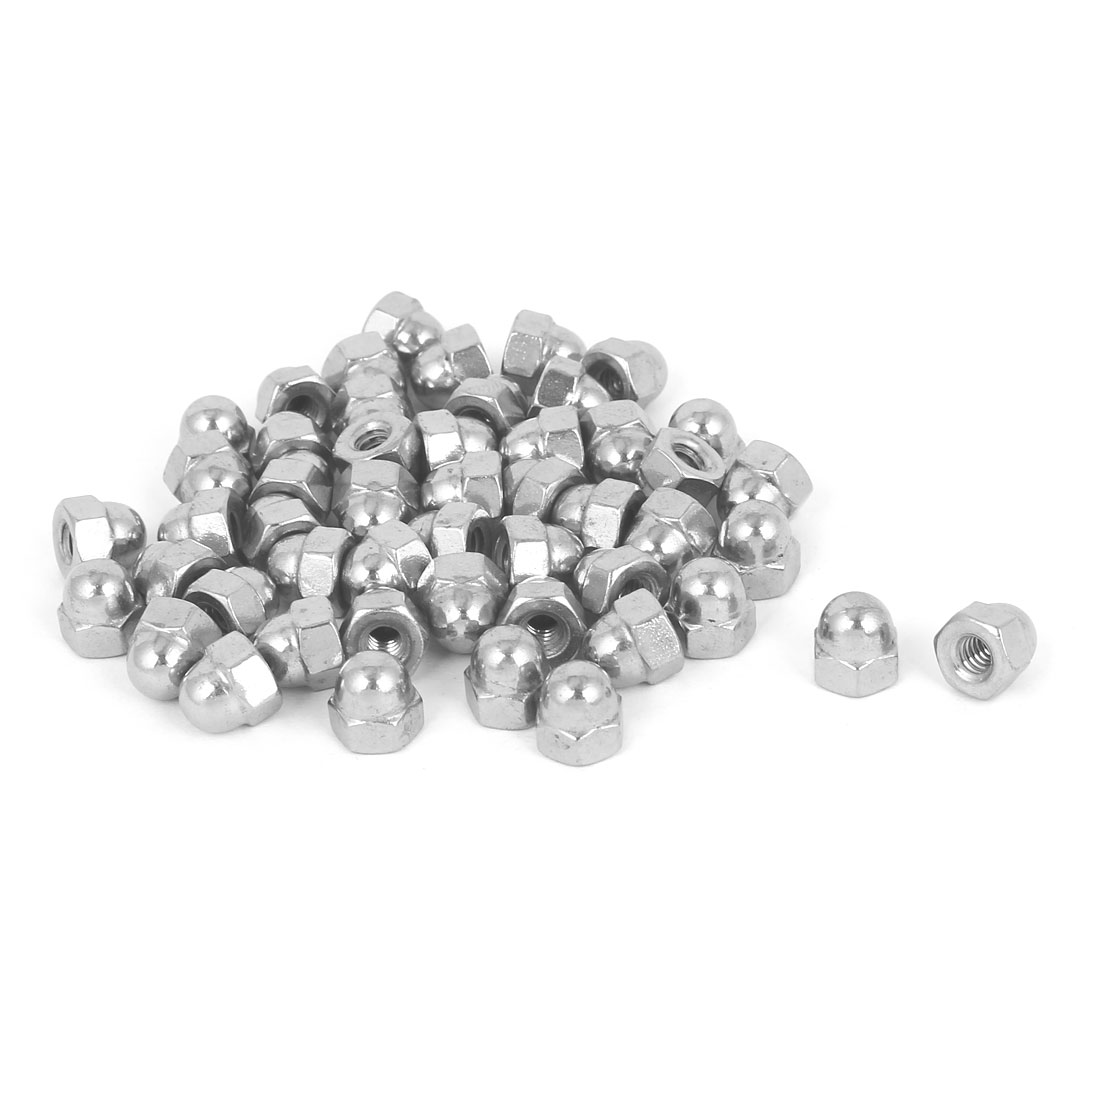 10#-24 304 Stainless Steel Dome Head Cap Hexagon Nuts Silver Tone 50pcs